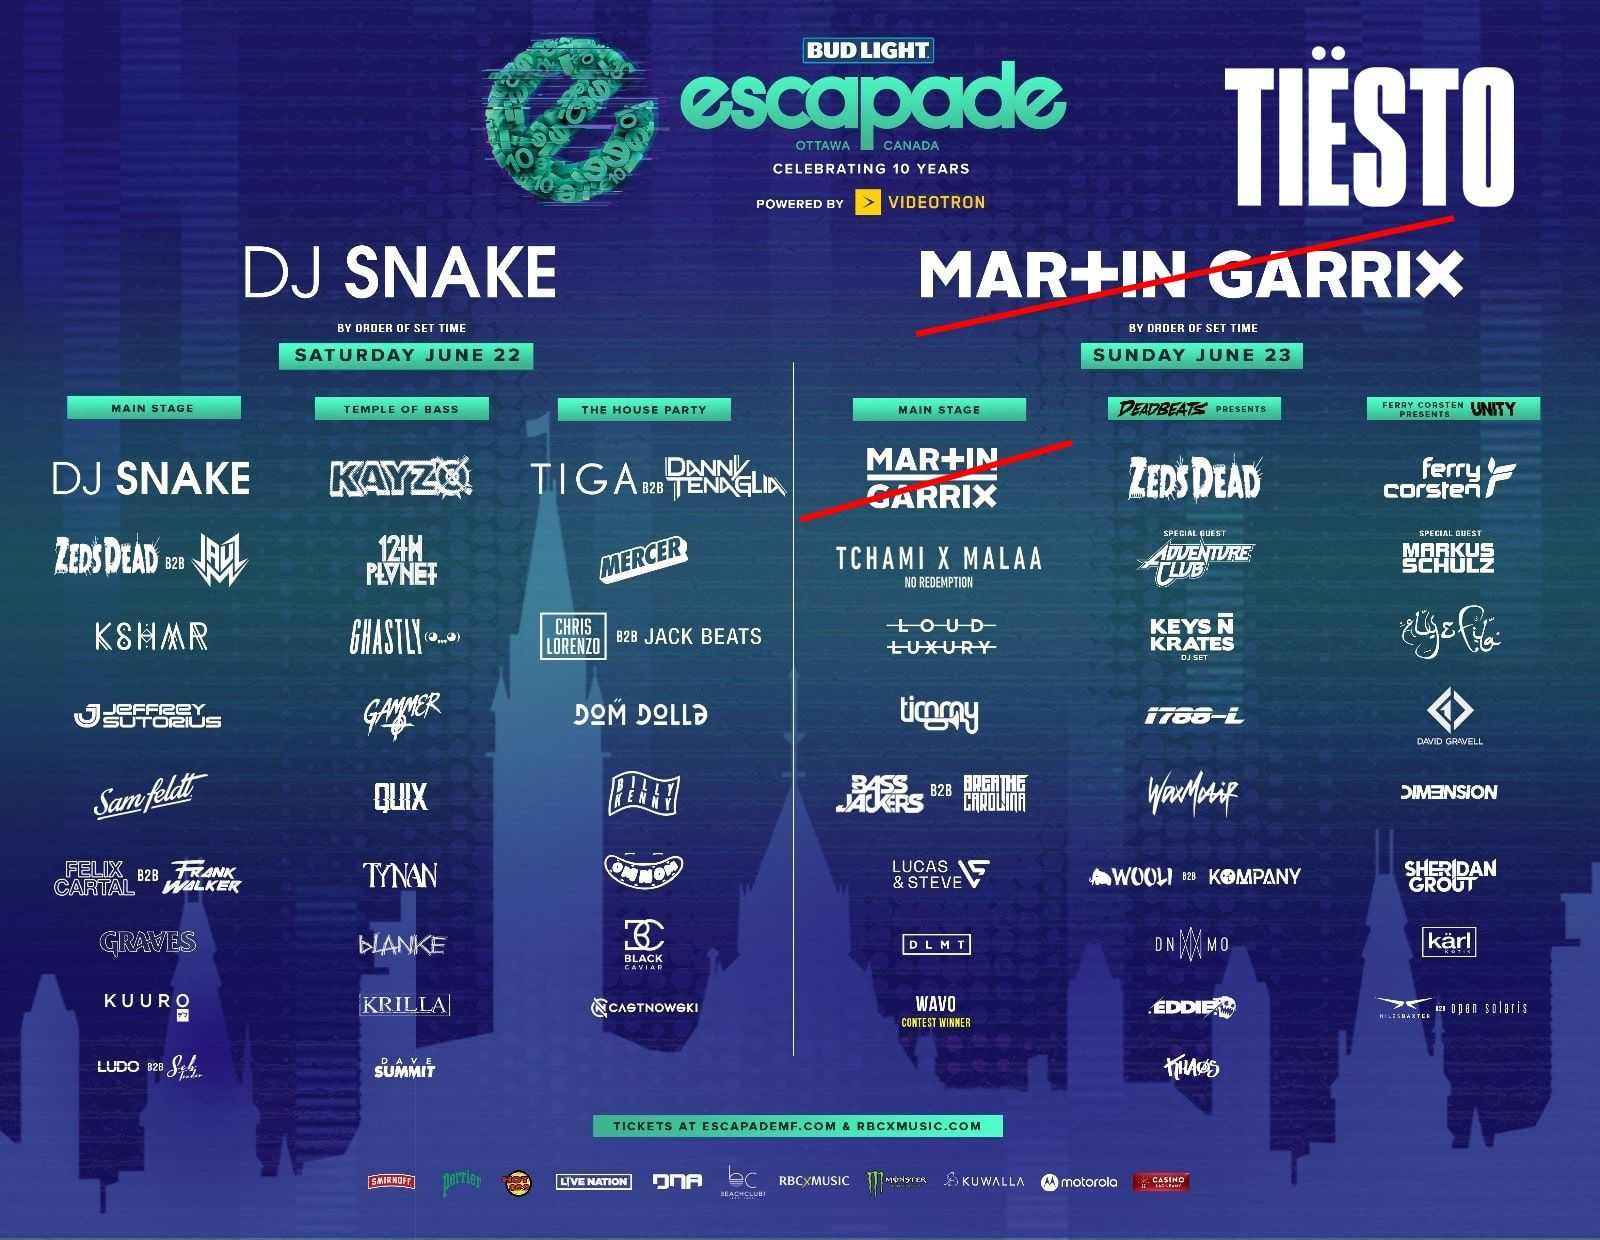 Tiësto photos, vidéos | Escapade Music Festival | Ottawa, Canada - june 23, 2019